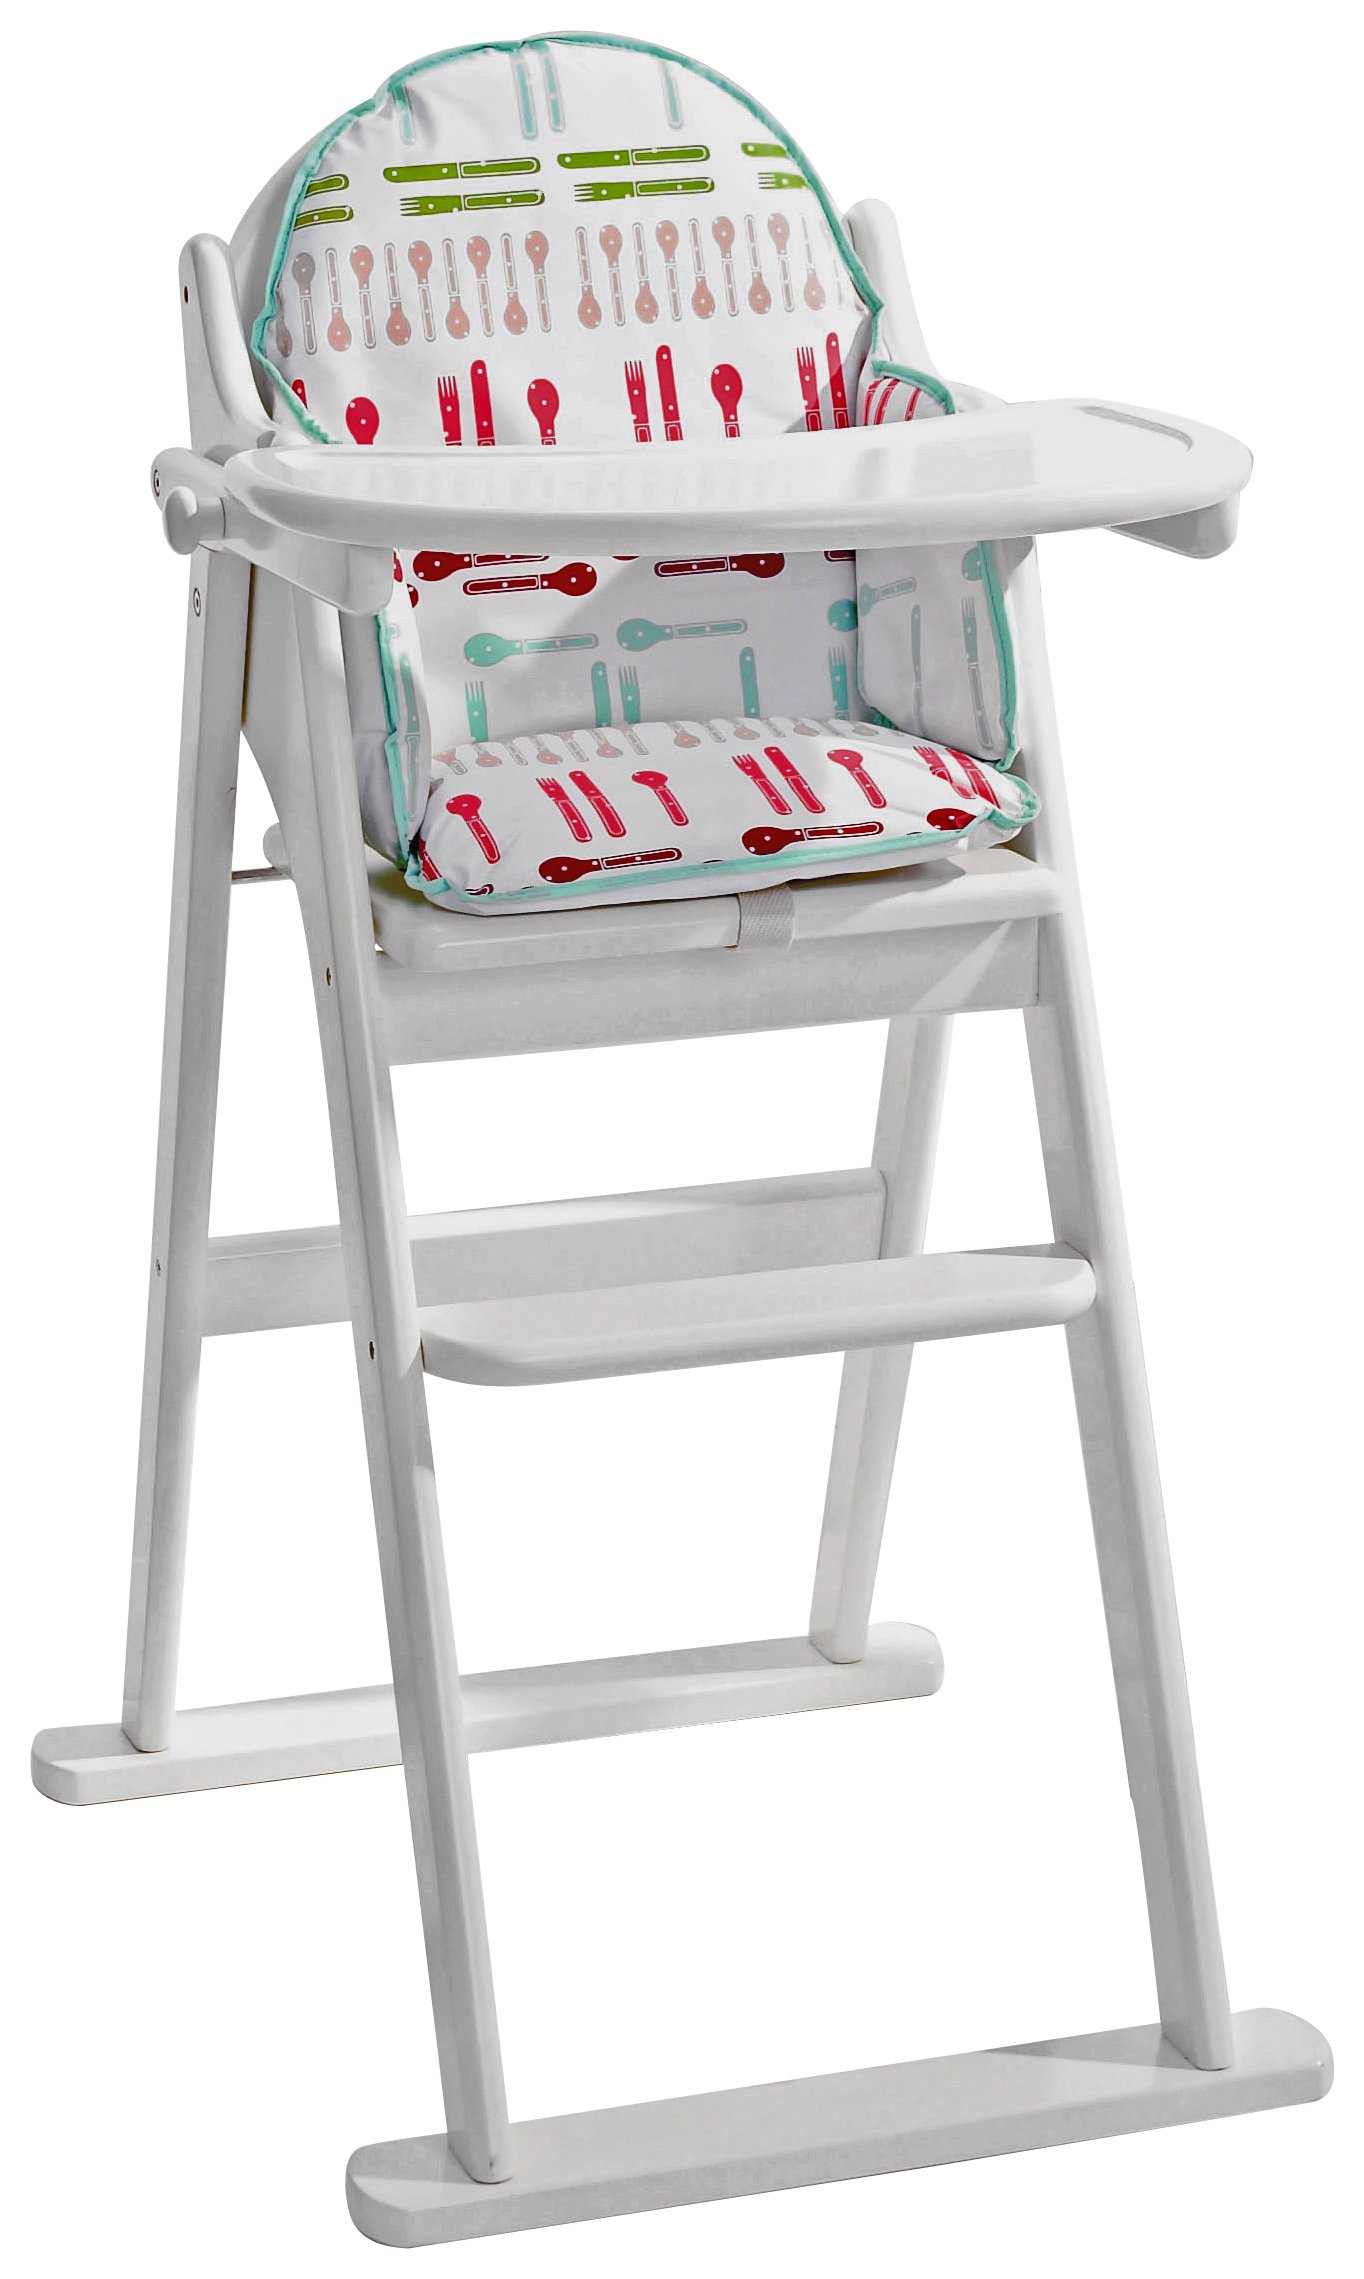 East Coast Dinner Time Baby Highchair Insert